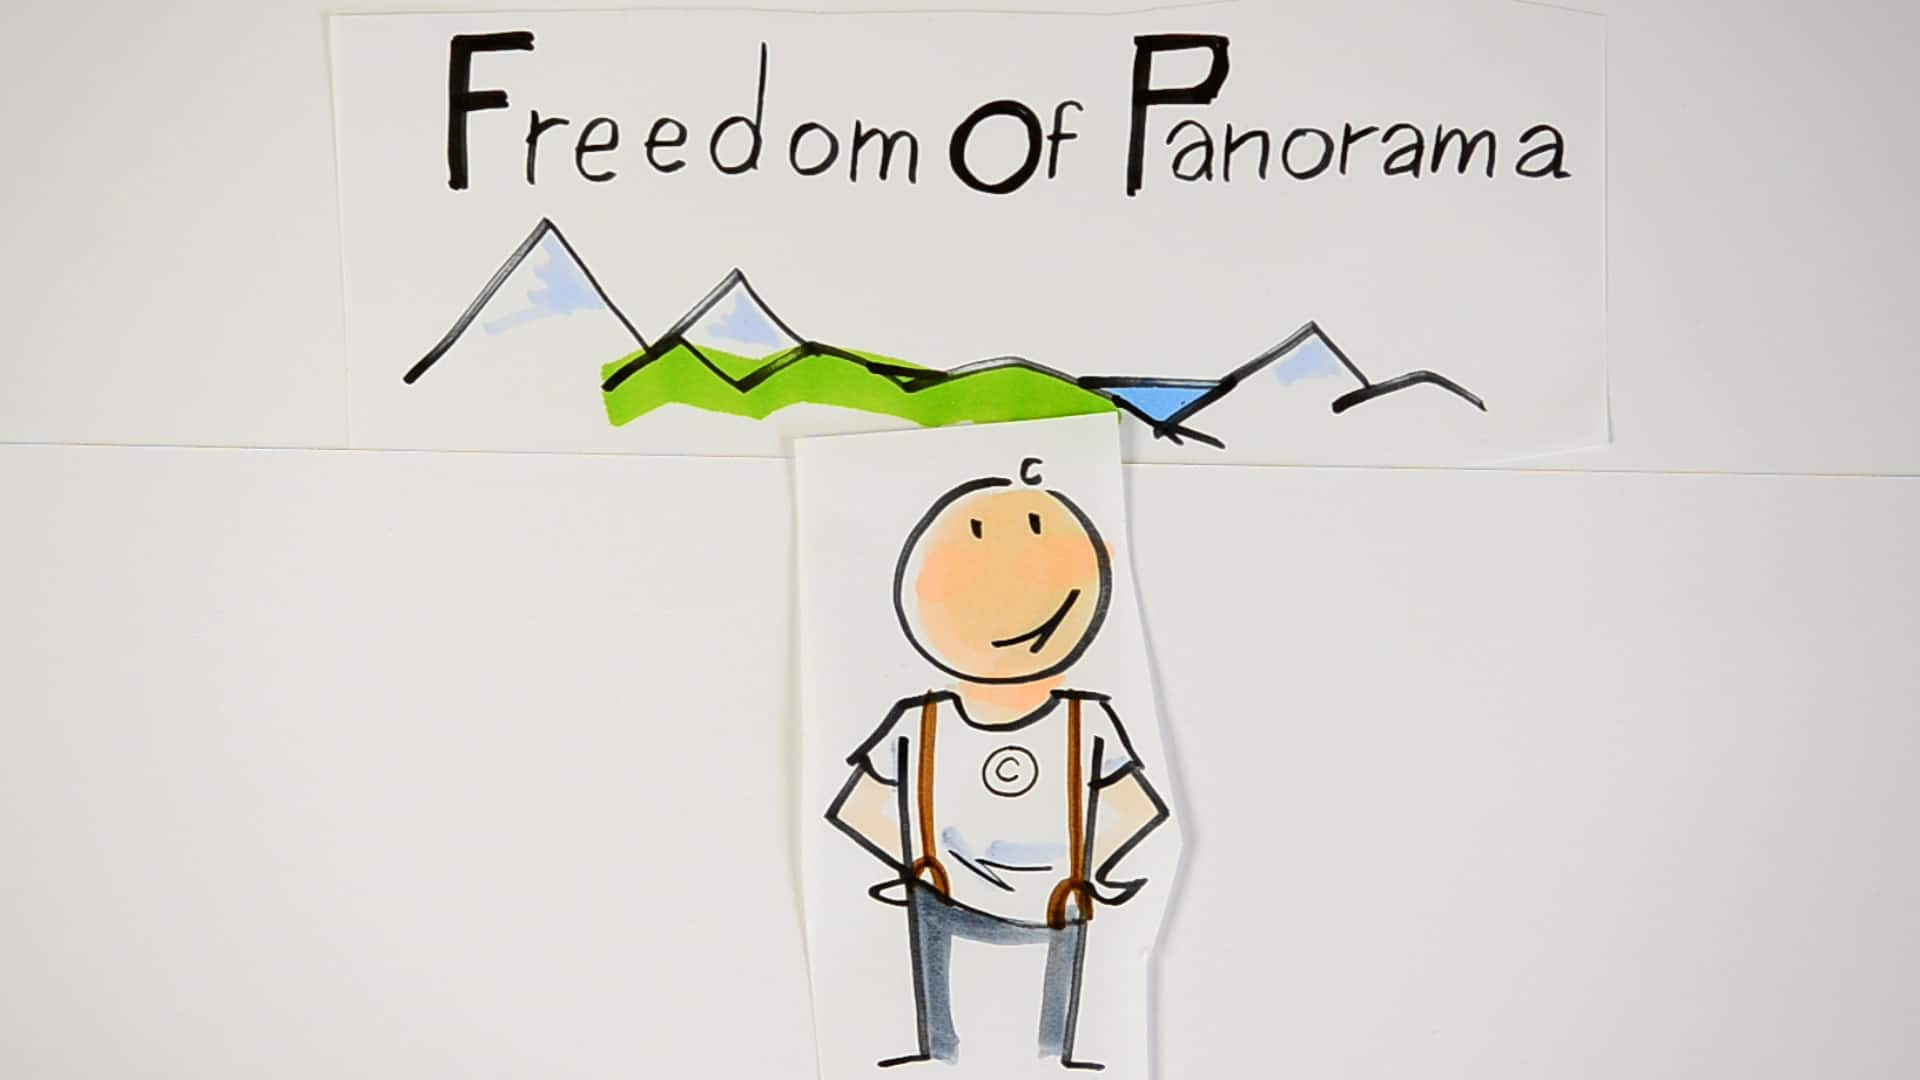 Copy explains 'Freedom of Panorama'